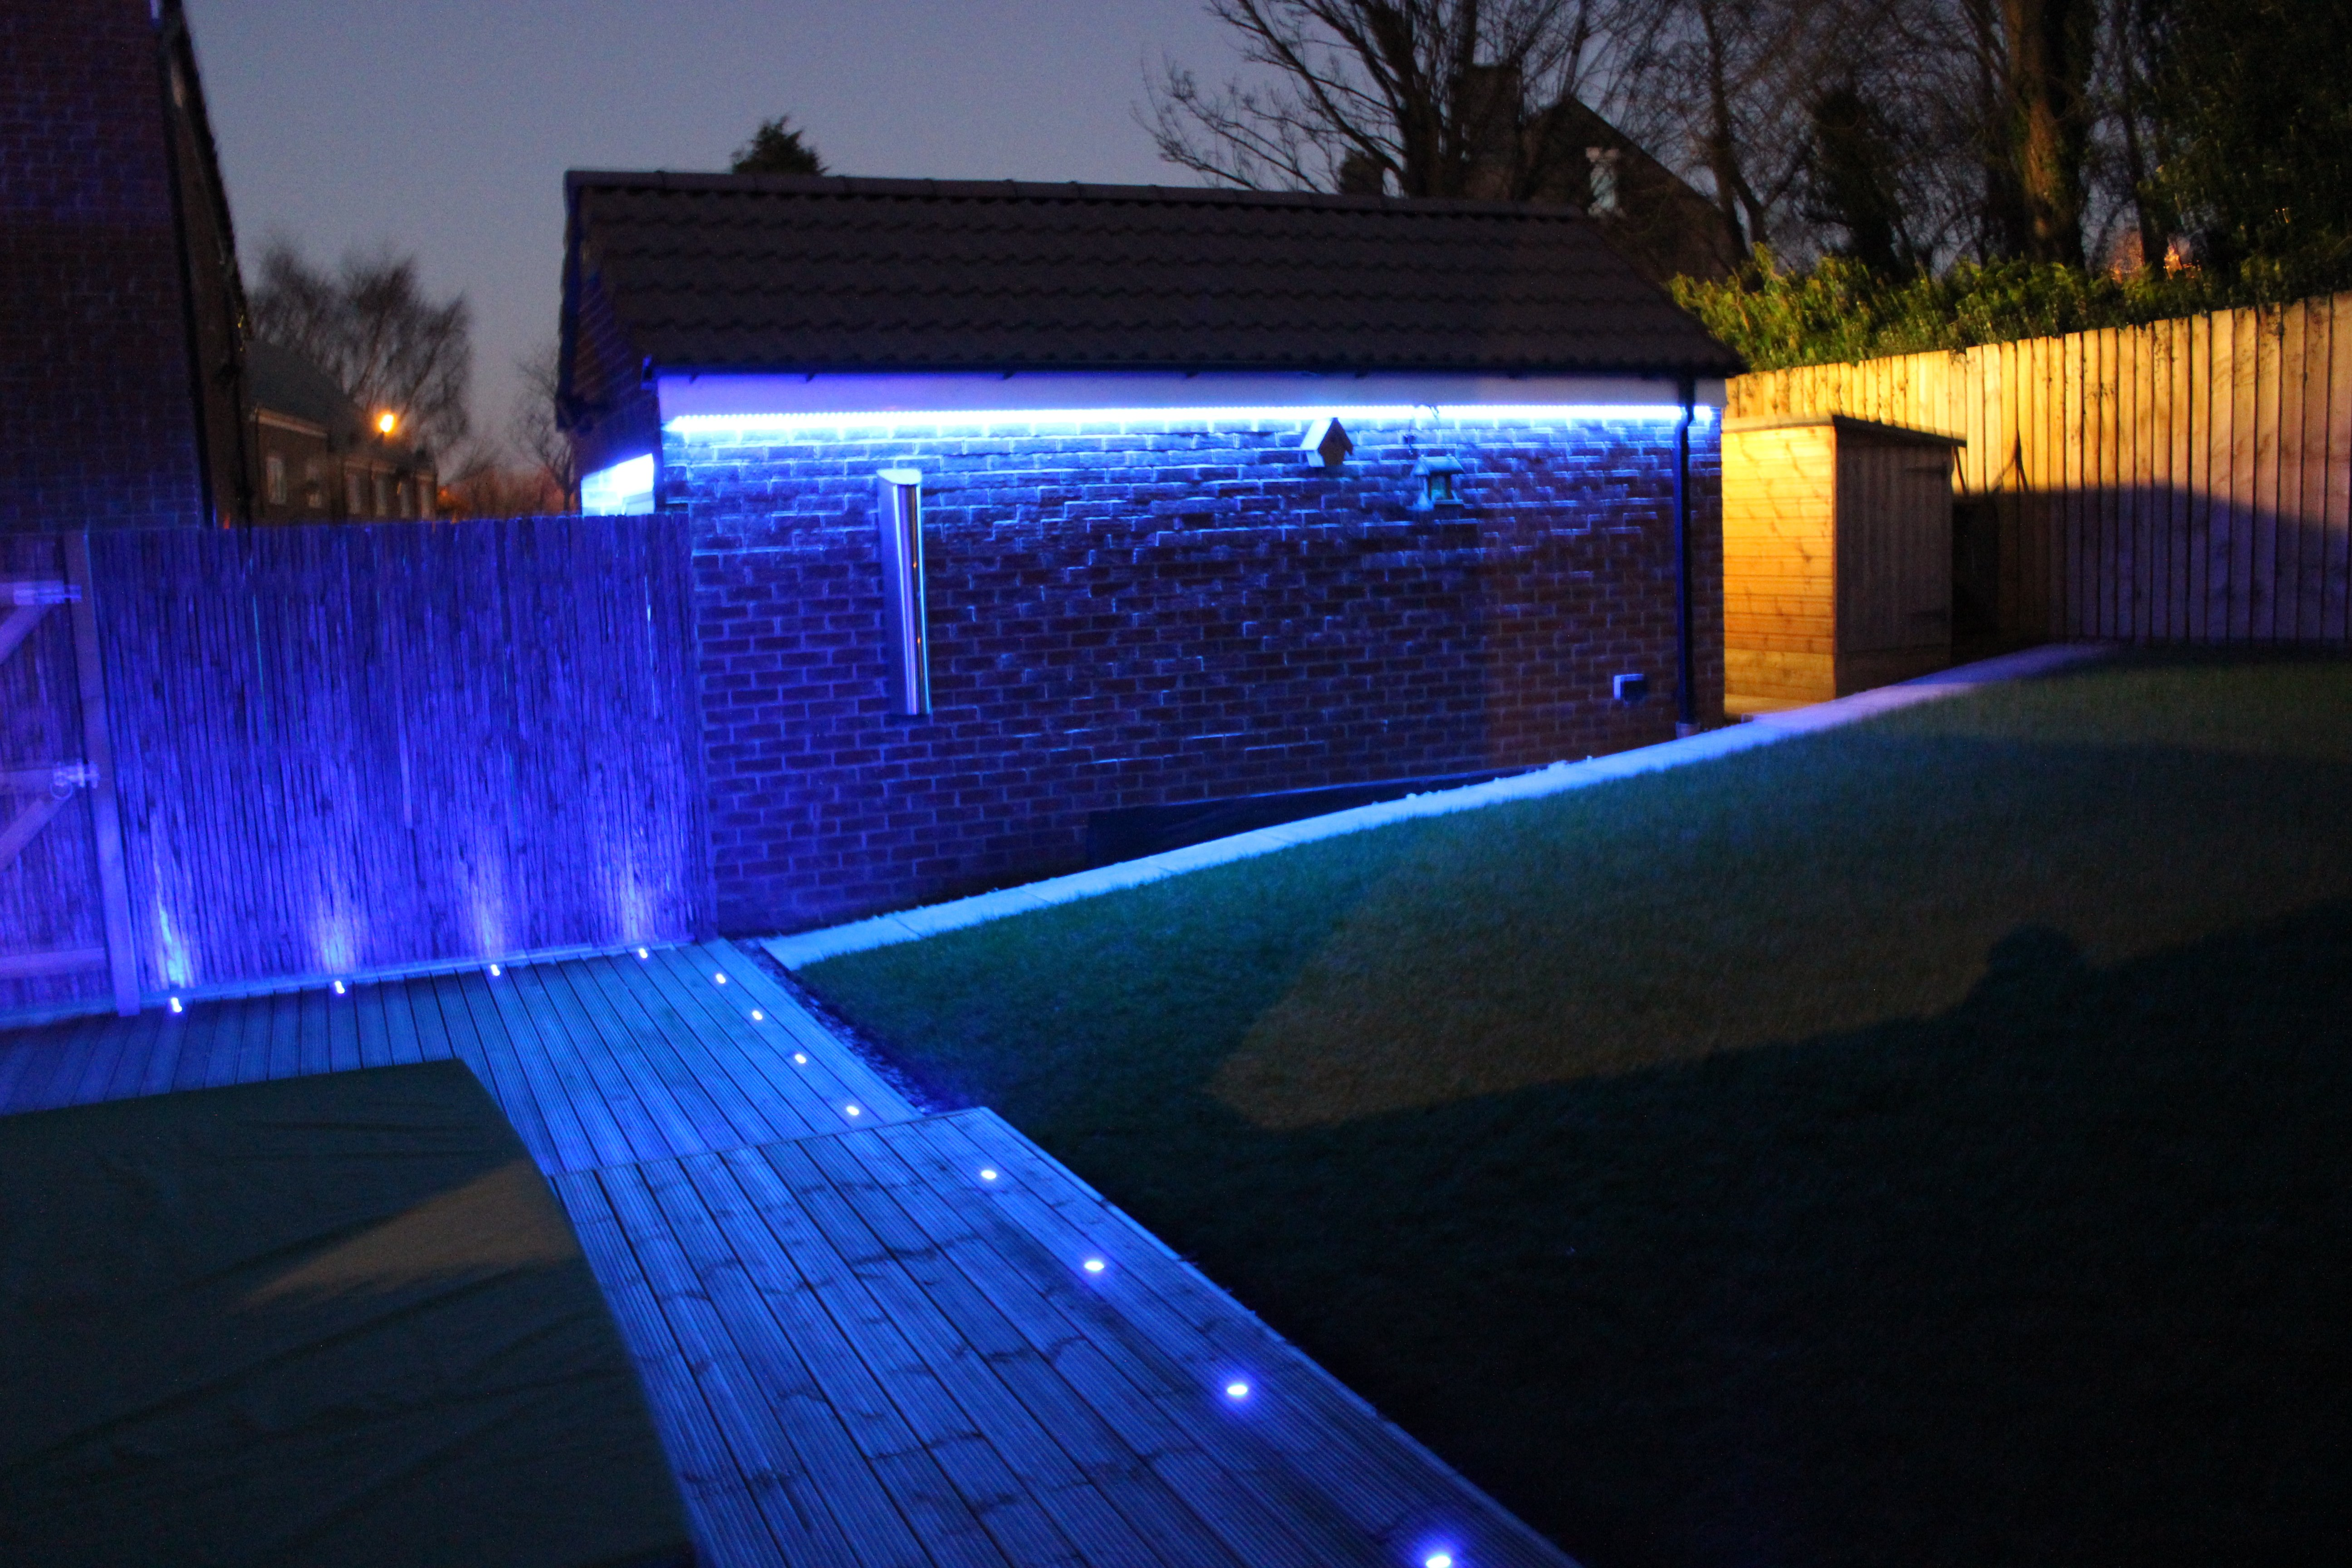 Garden LED lighting installed by AJOB Electrical Ltd electrician in Leeds